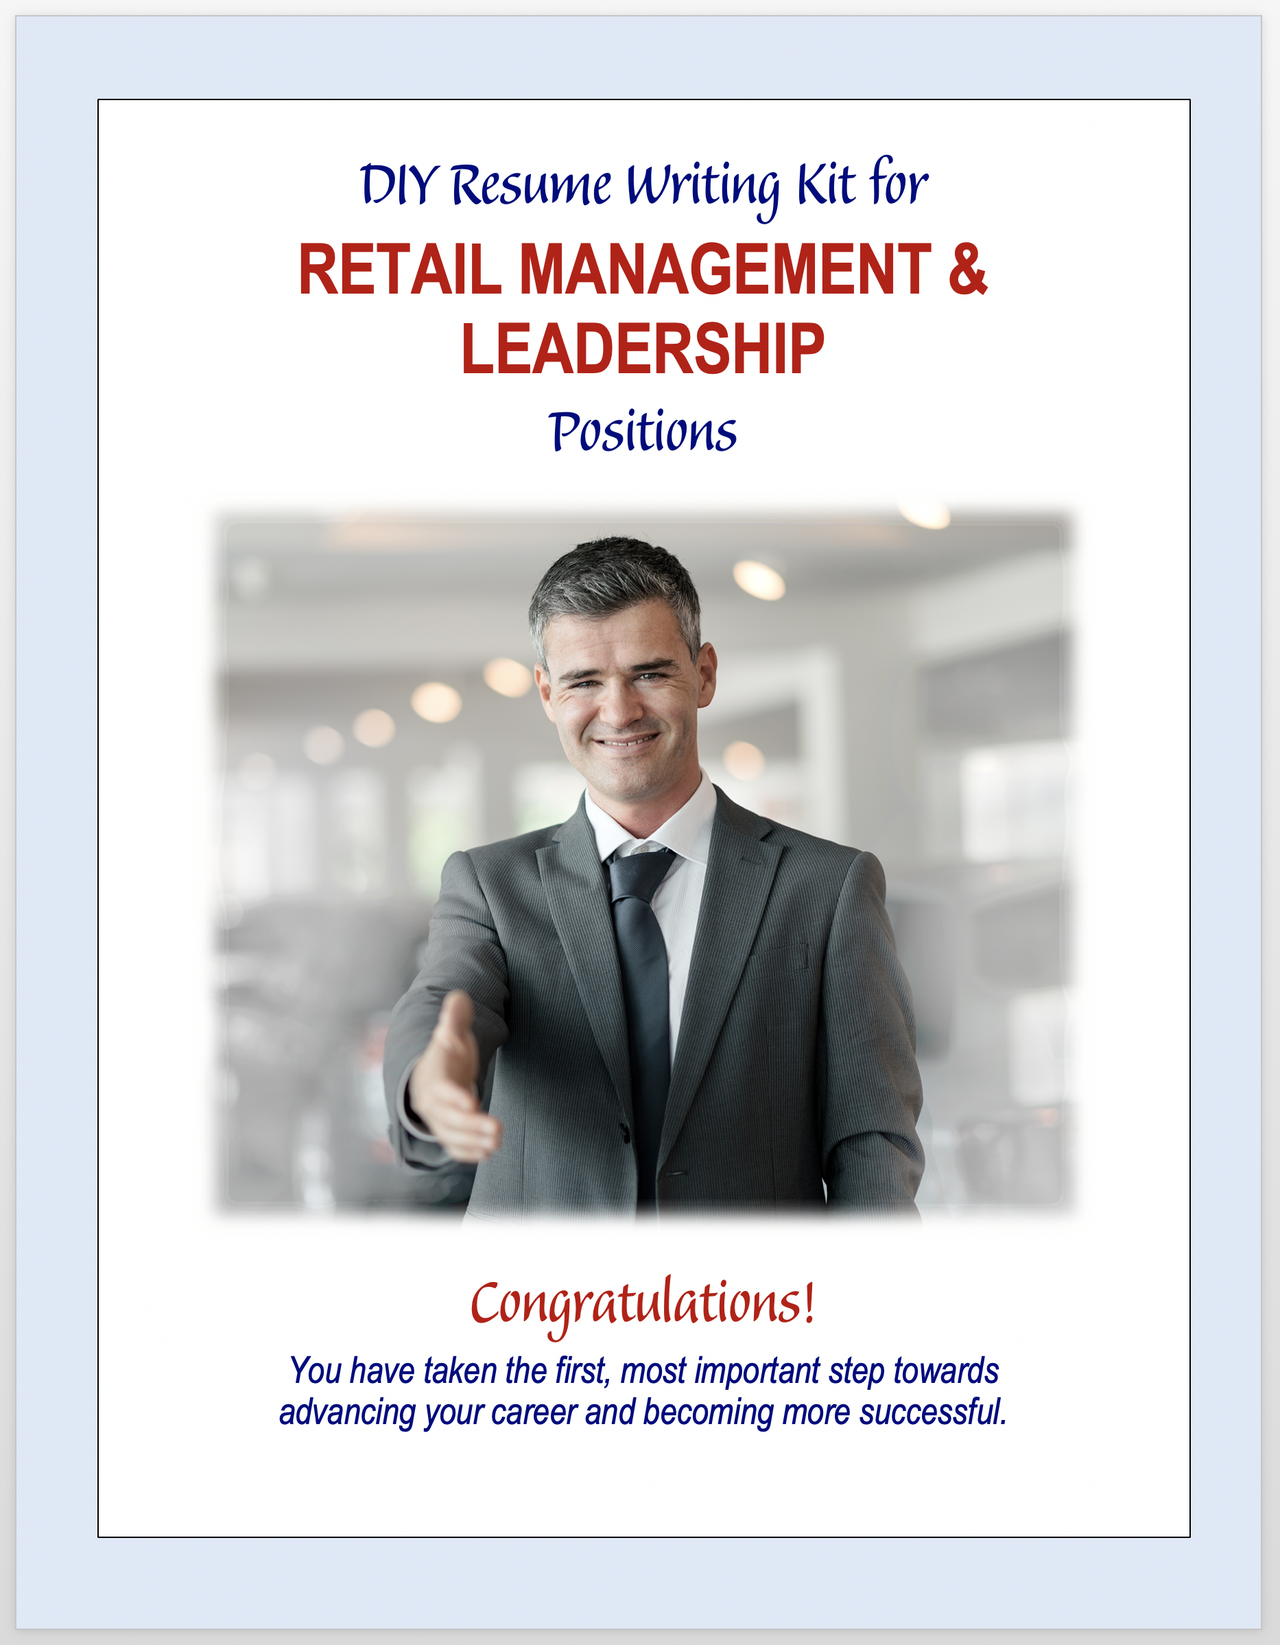 retail management & leadership.png